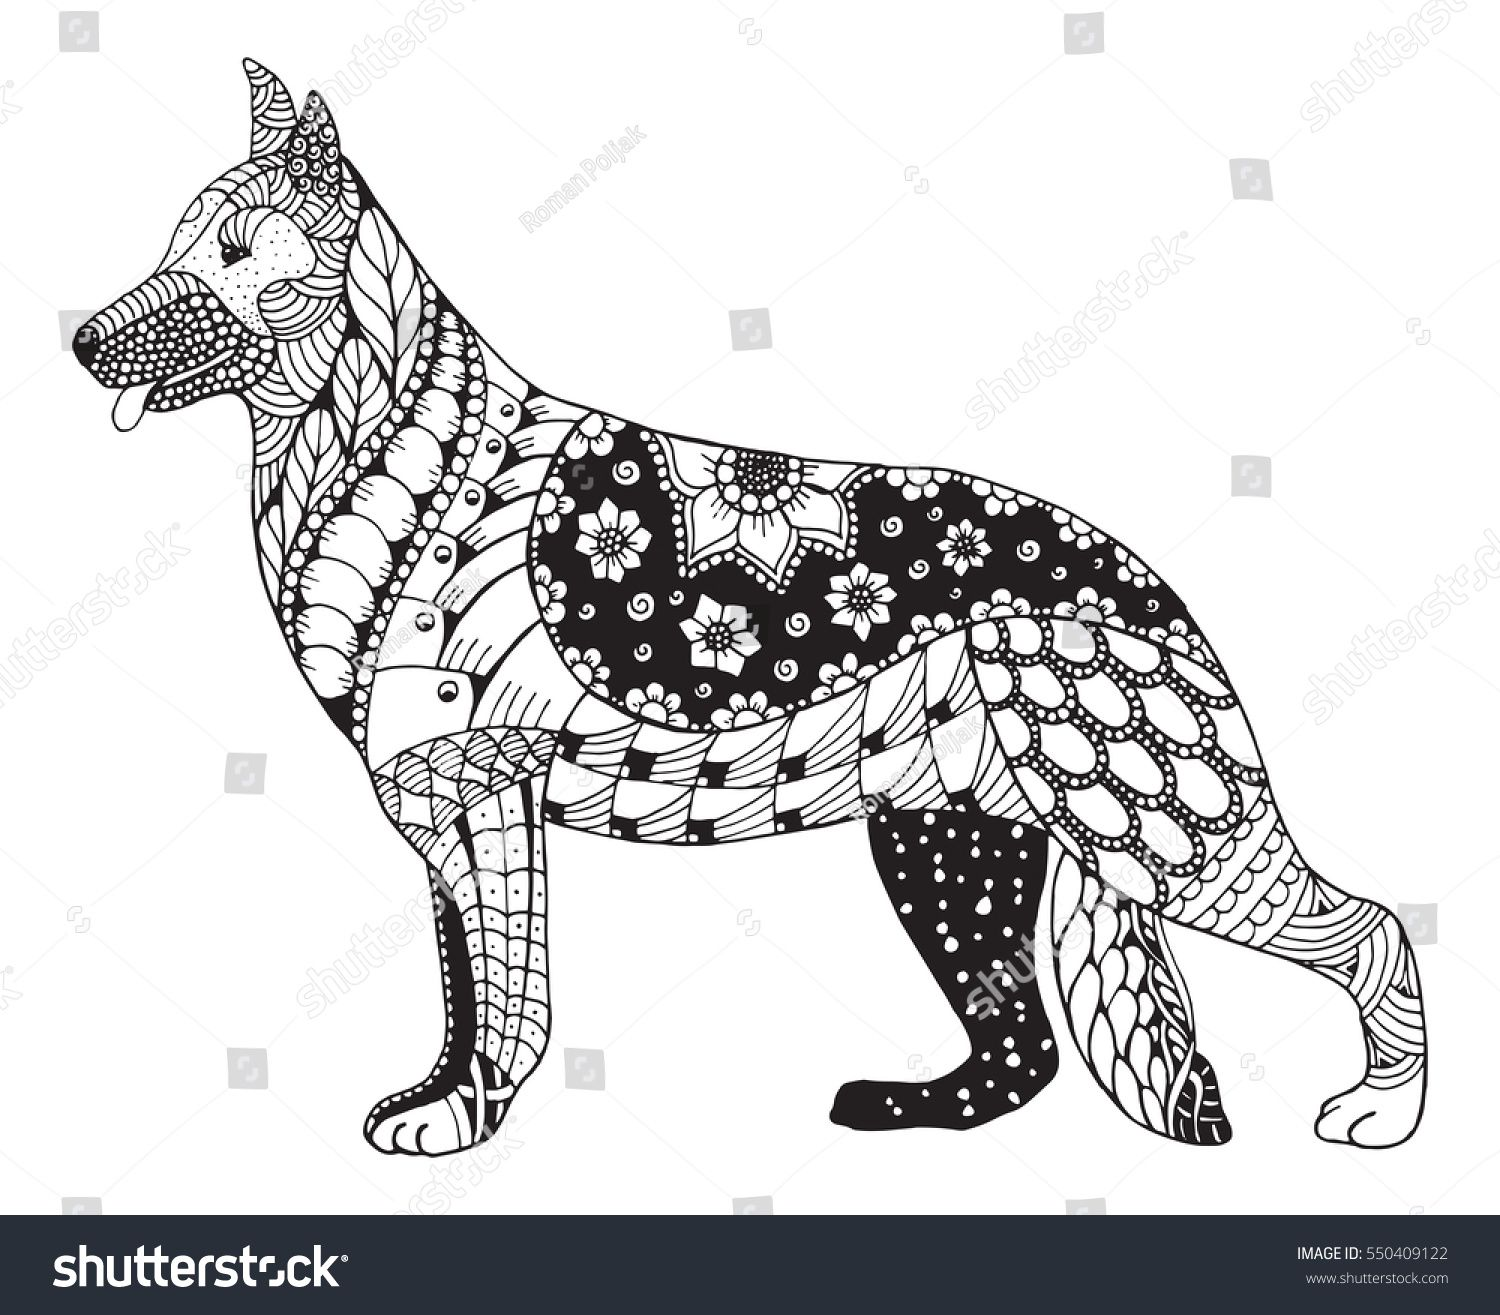 Dog Mandala Svg Saferbrowser Image Search Results Dog Coloring Book Dog Drawing Dog Coloring Page [ 1315 x 1500 Pixel ]